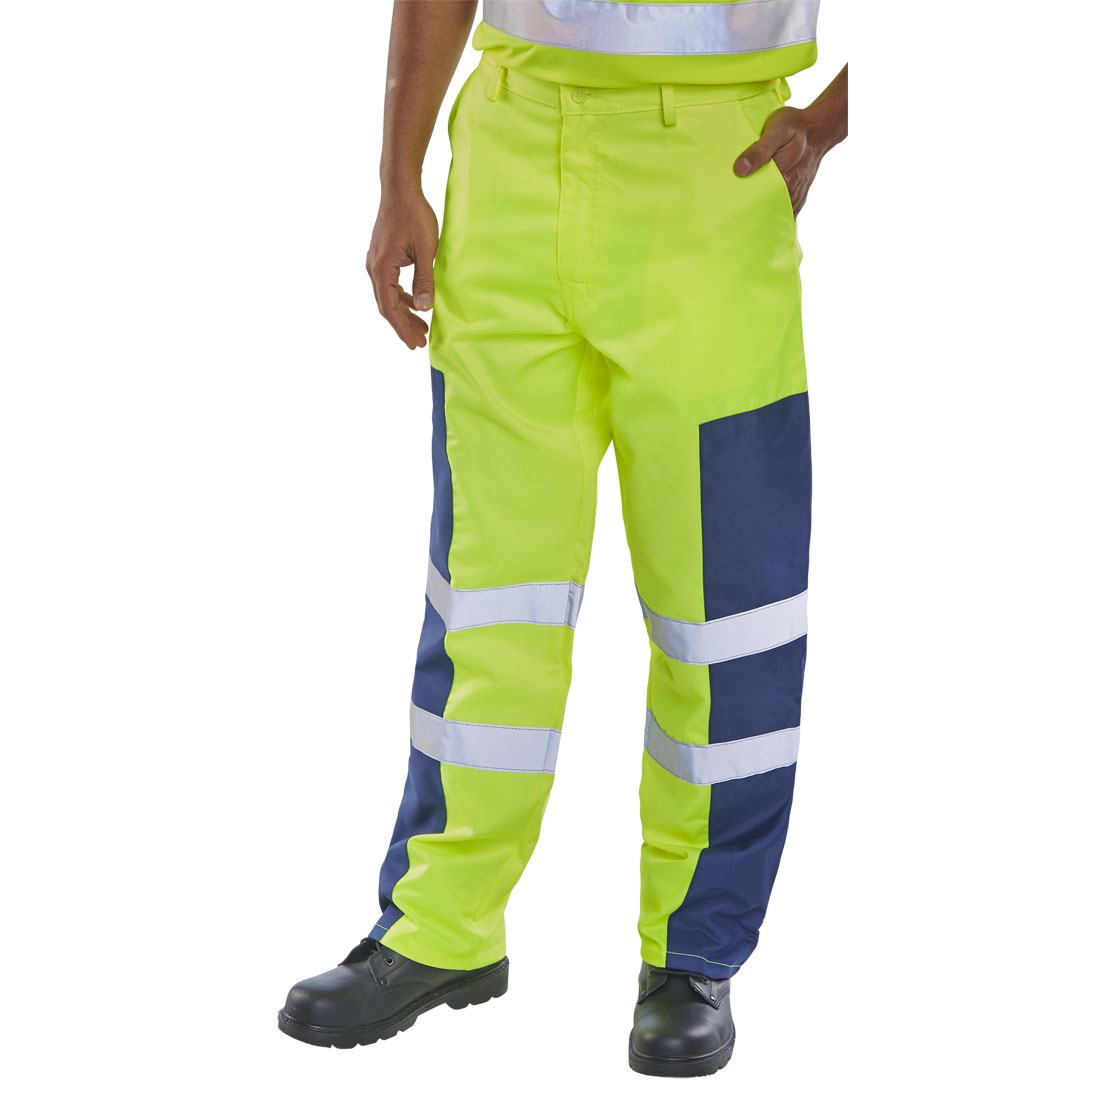 High Visibility Click Workwear Trousers Hi-Vis Nylon Patch Yellow/Navy 32 Long Ref PCTSYNNP32T *Up to 3 Day Leadtime*